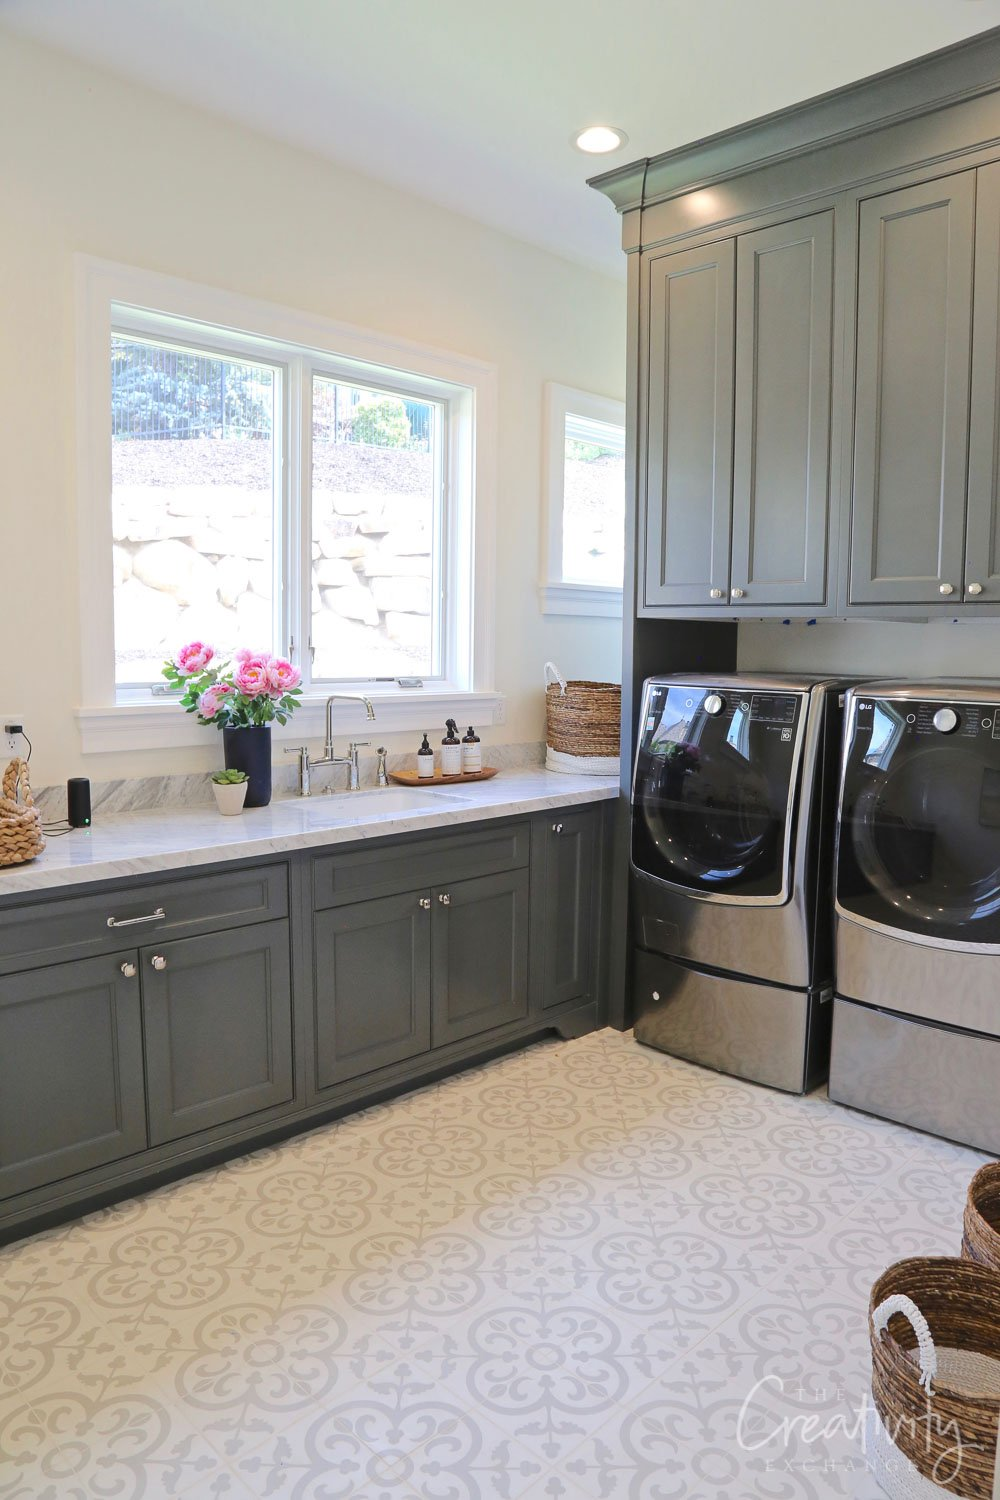 Laundry room cabinet color is Farrow and Ball Downpipe